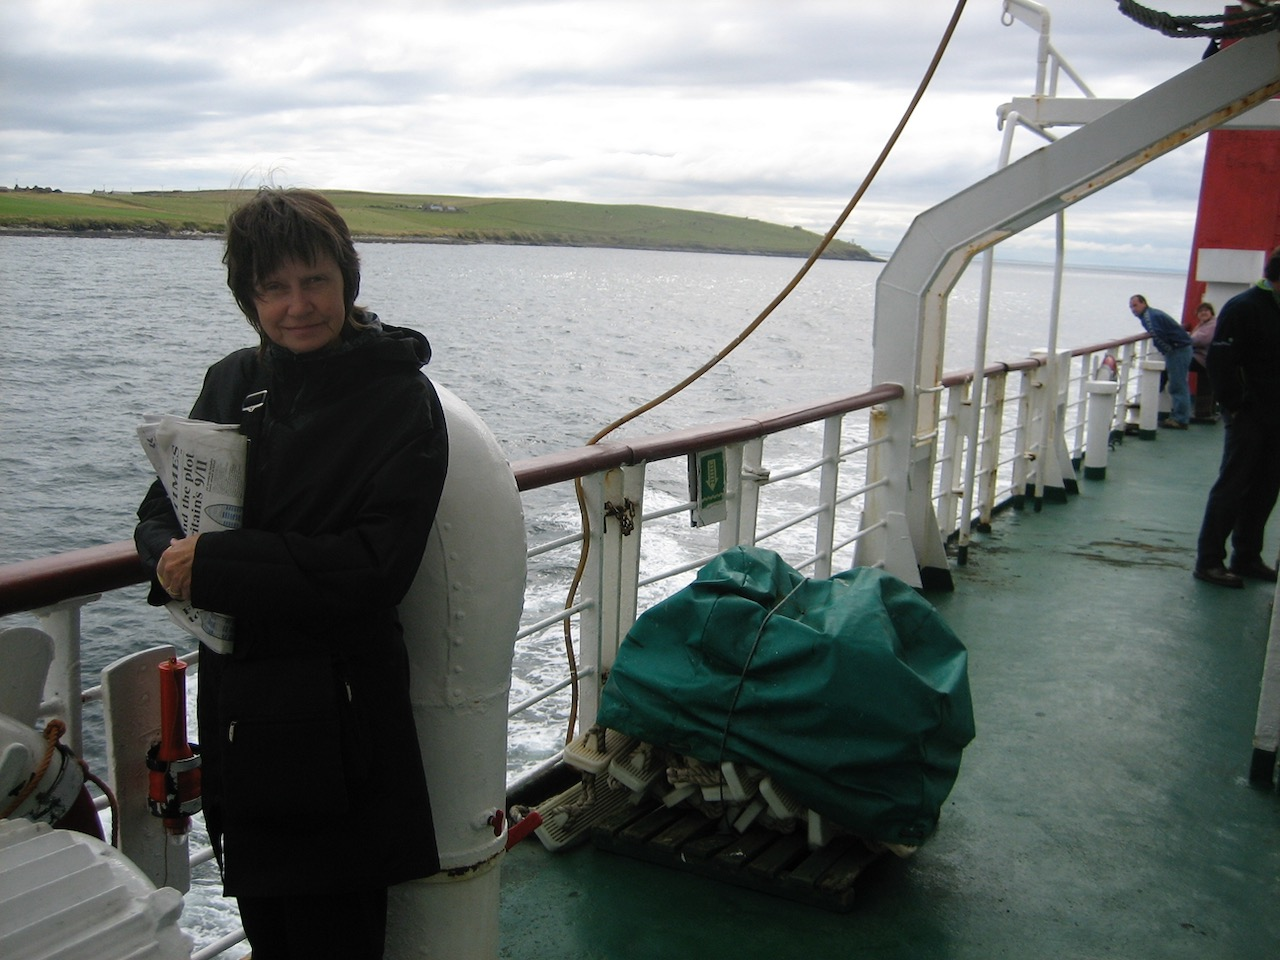 Into Scapa Flow on the way to St Margaret's Hope